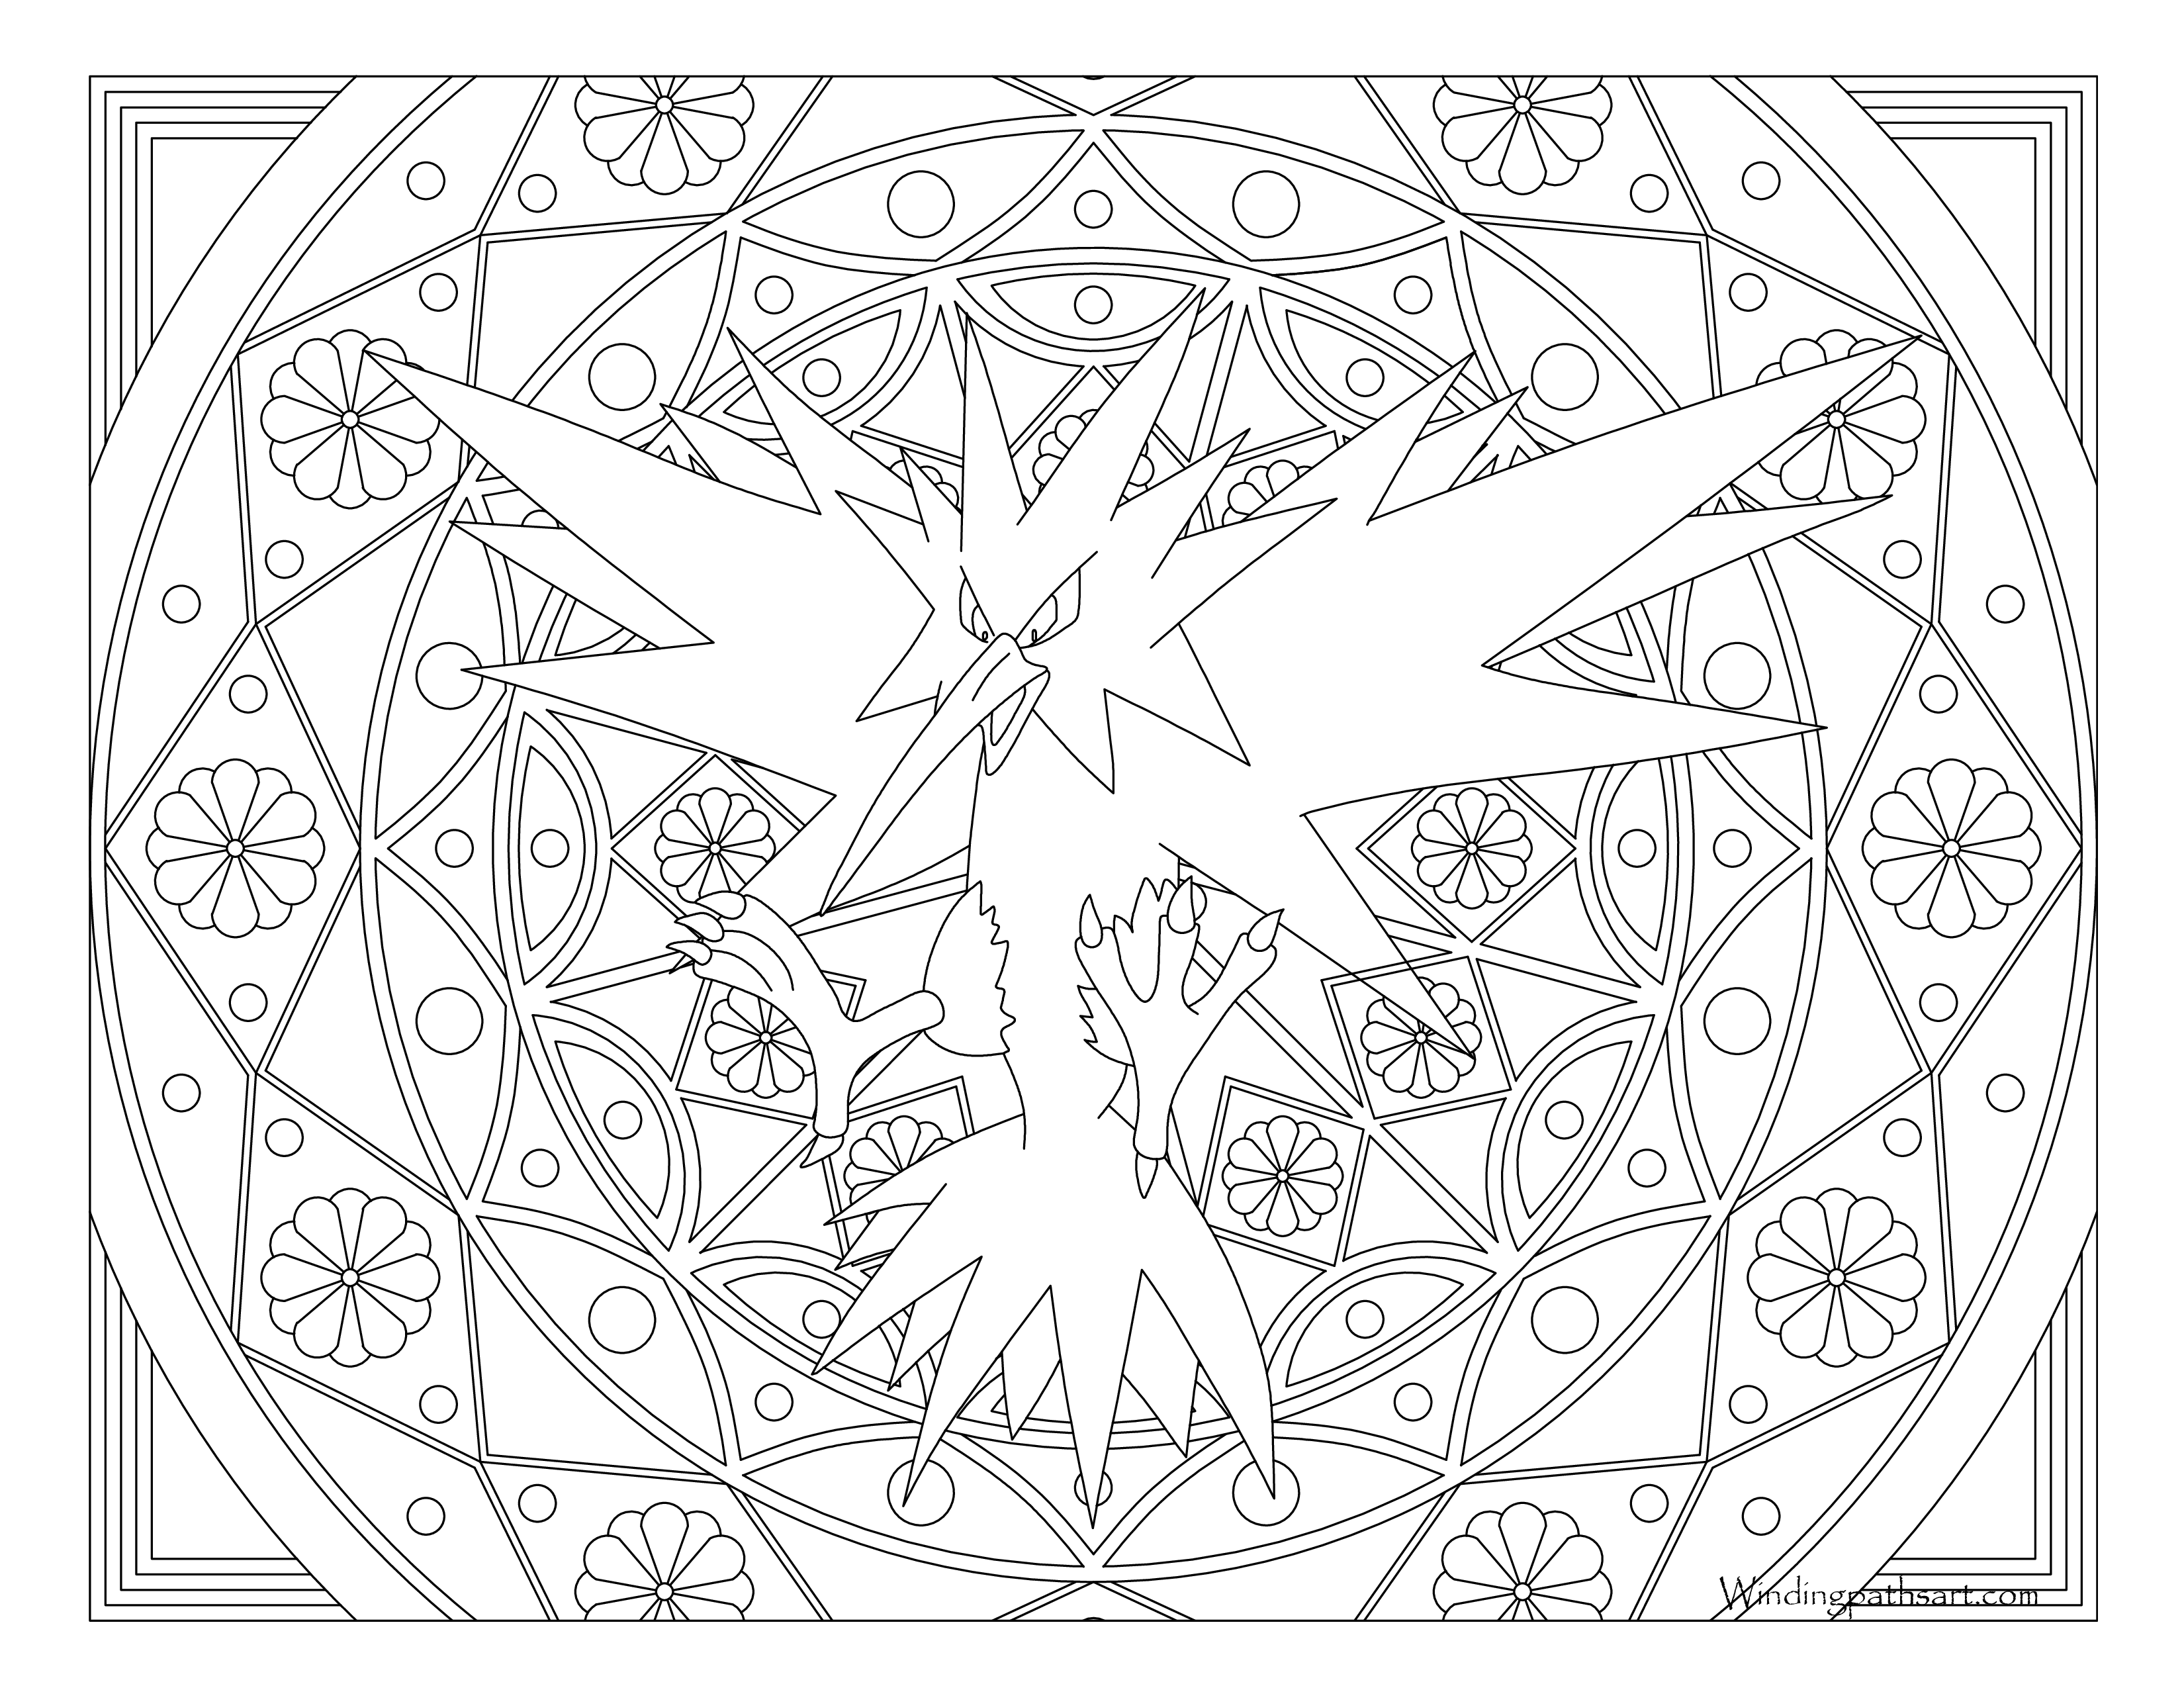 legendary zapdos pokemon coloring pages zapdos pokemon coloring pages printable free pokemon legendary pages coloring pokemon zapdos